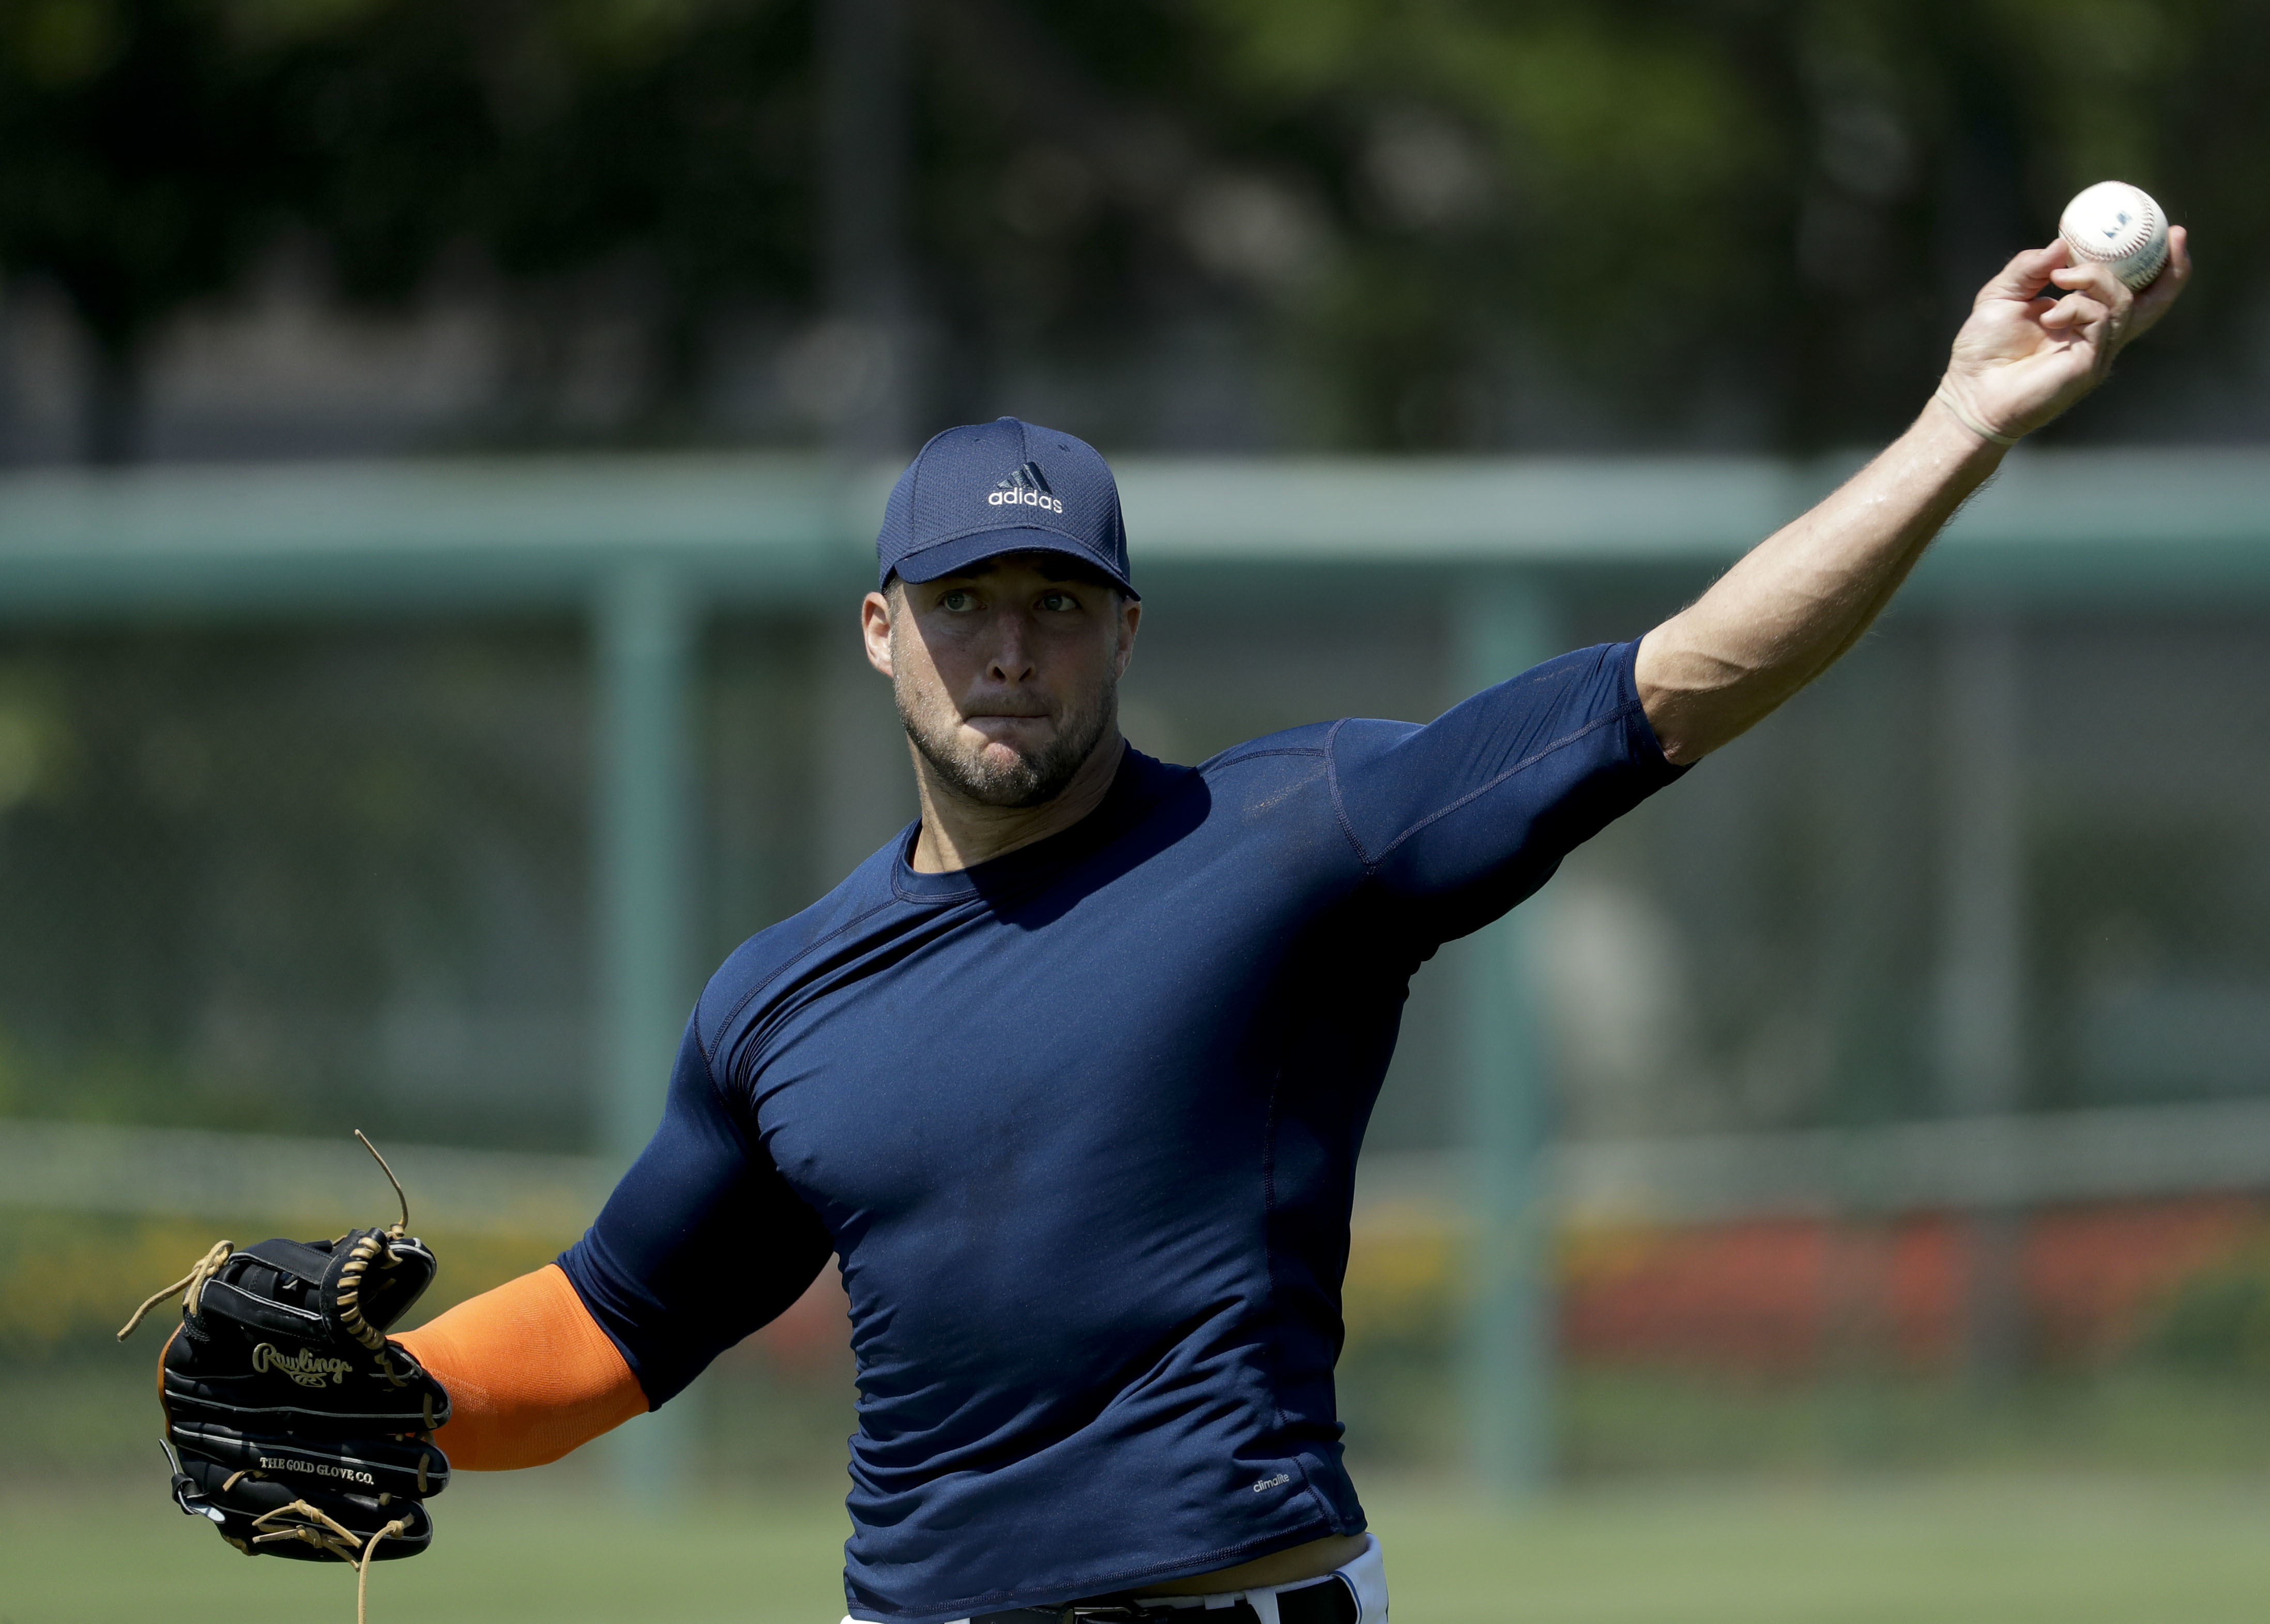 Former NFL quarterback, Tim Tebow works out for baseball scouts and the media during a showcase on the campus of the University of Southern California, Tuesday, Aug. 30, 2016 in Los Angeles. The Heisman Trophy winner works out for a big gathering of scout